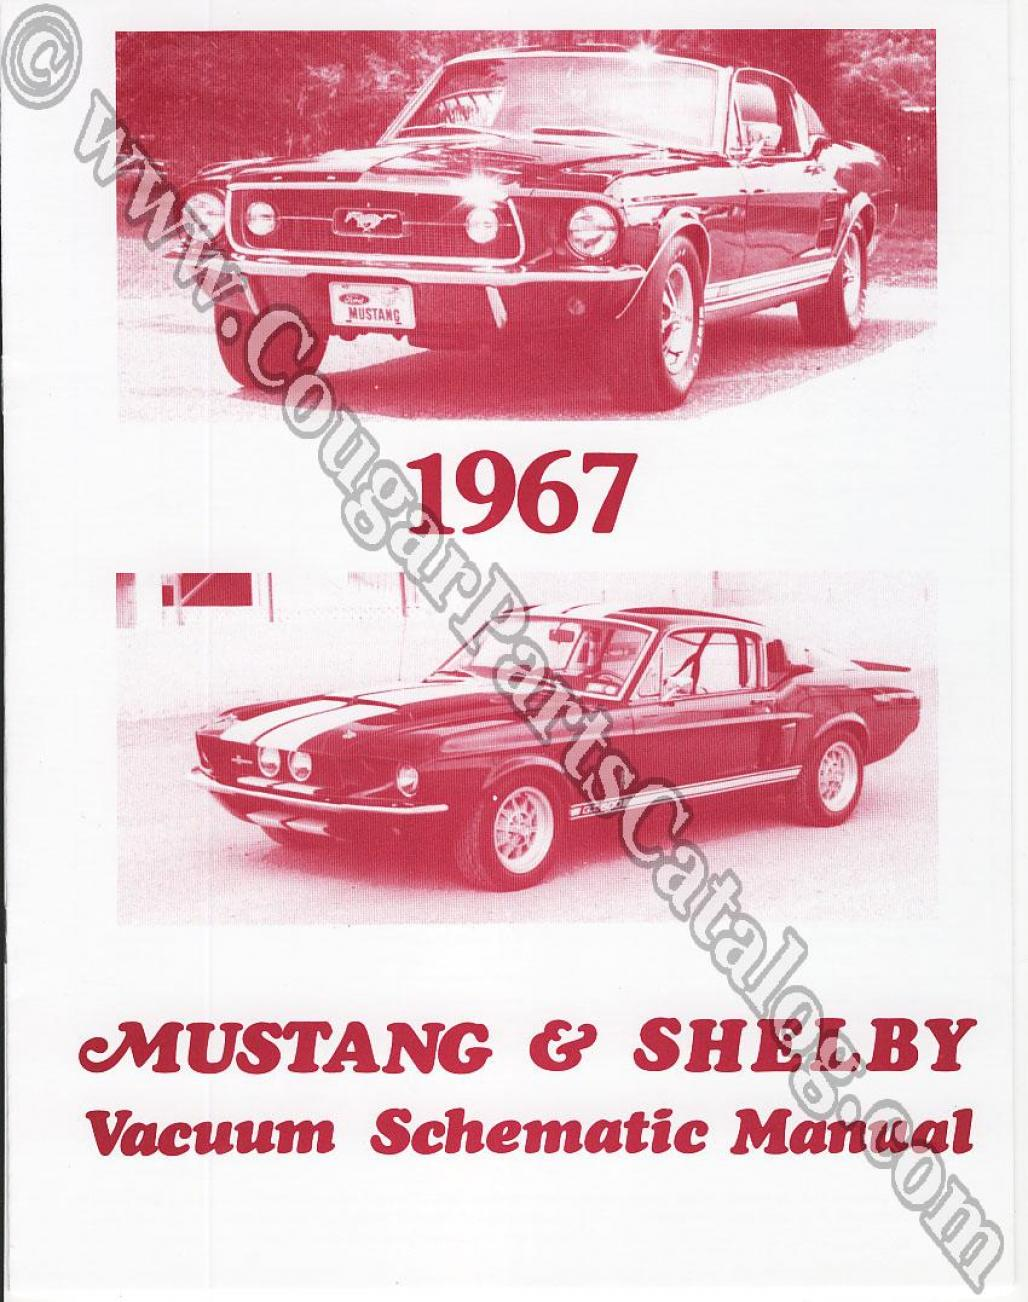 hight resolution of vacuum schematic manual repro 1967 mercury cougar 1967 ford mustang shelby